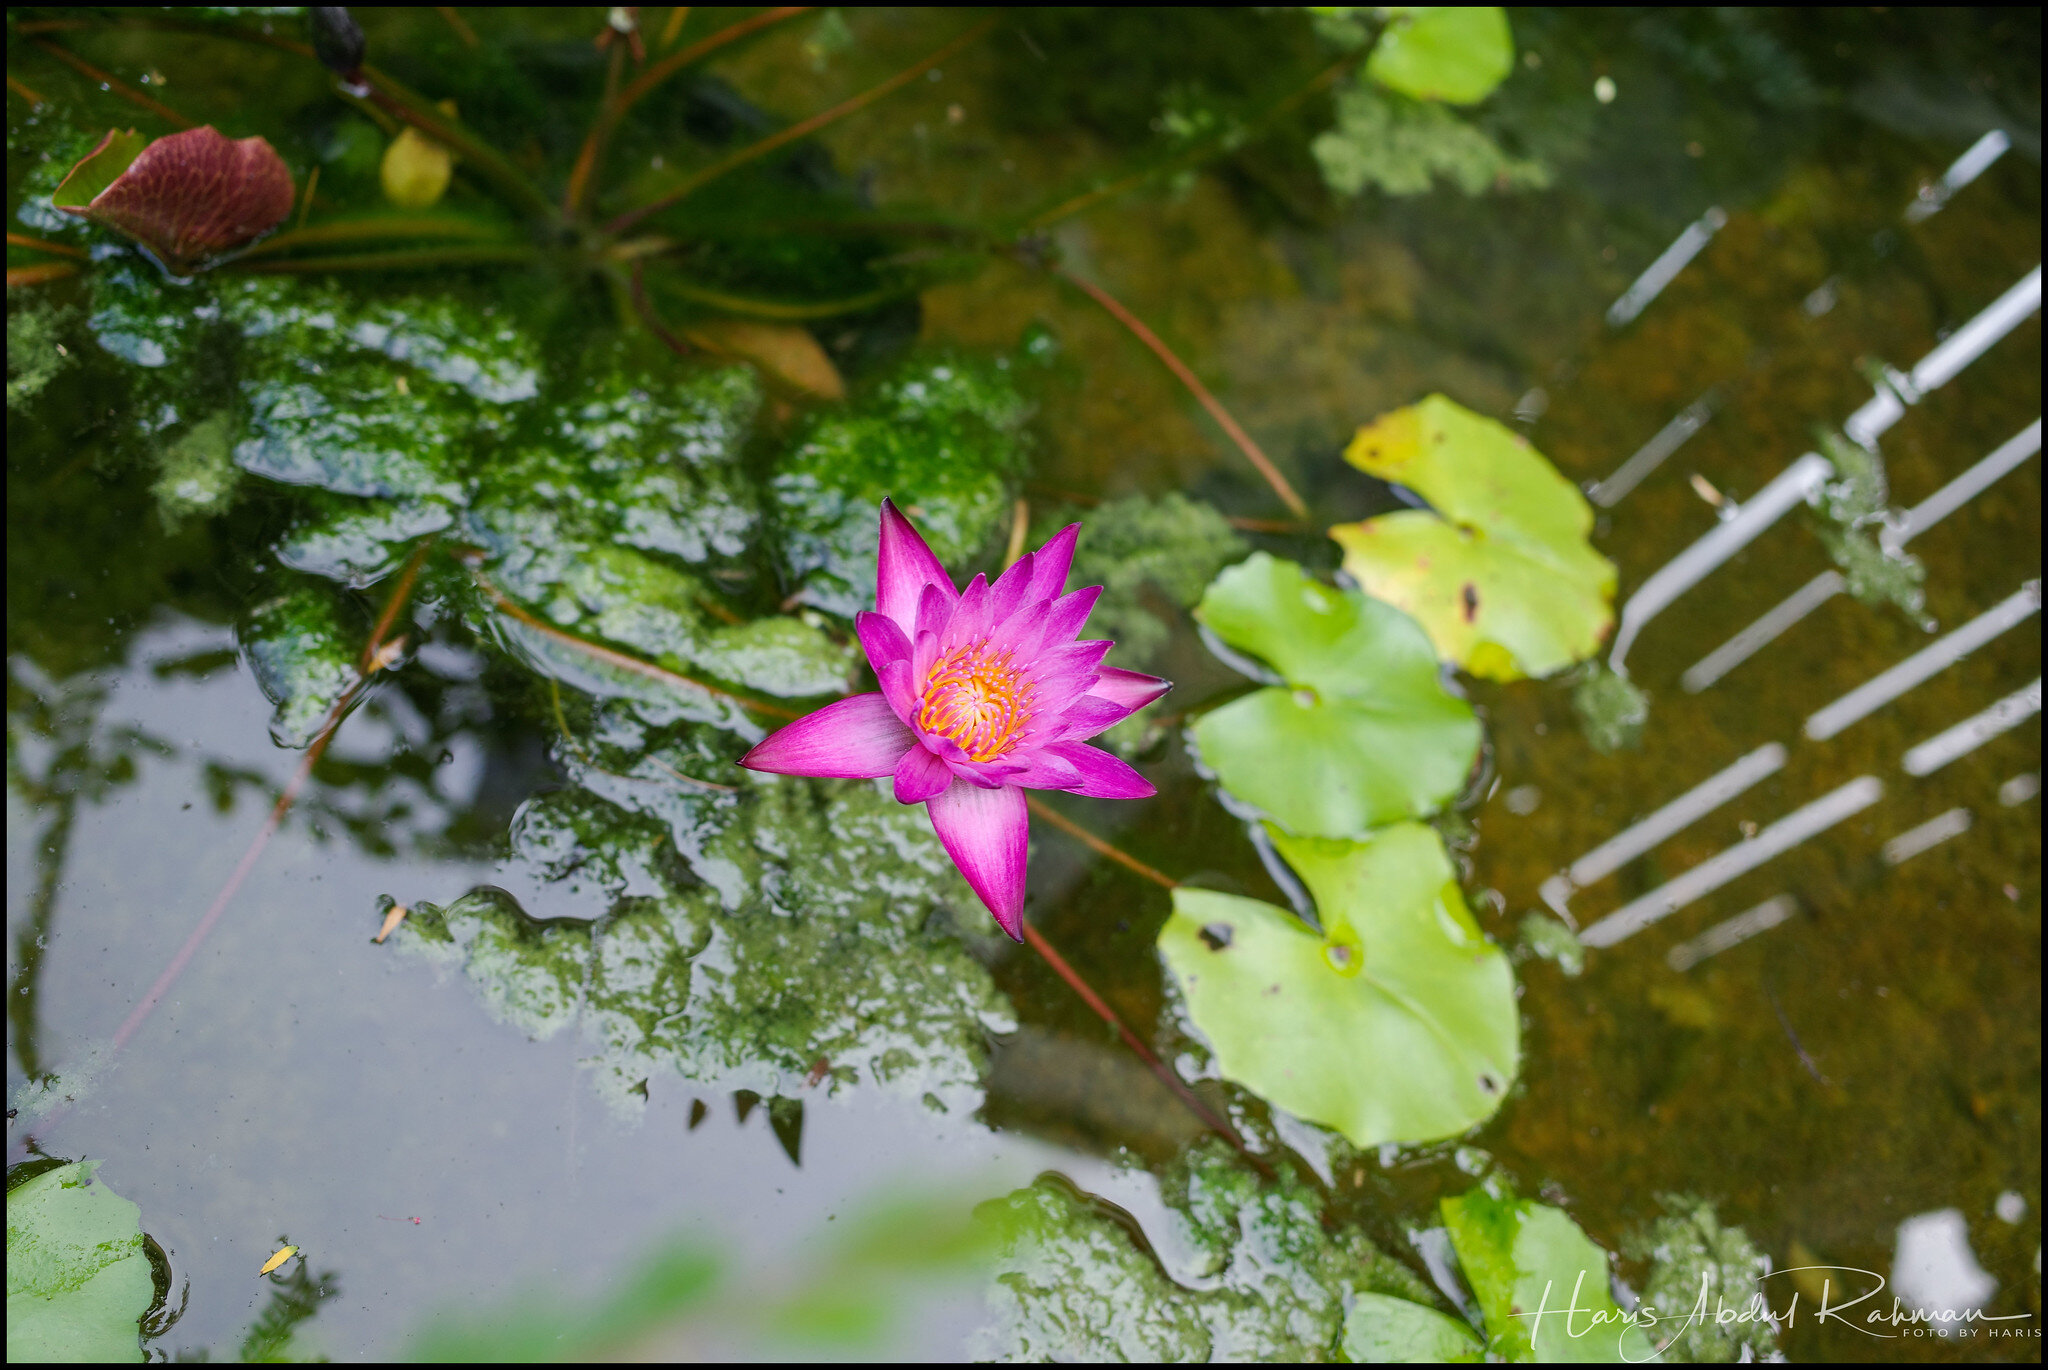 … with nice waterlilies growing there as well